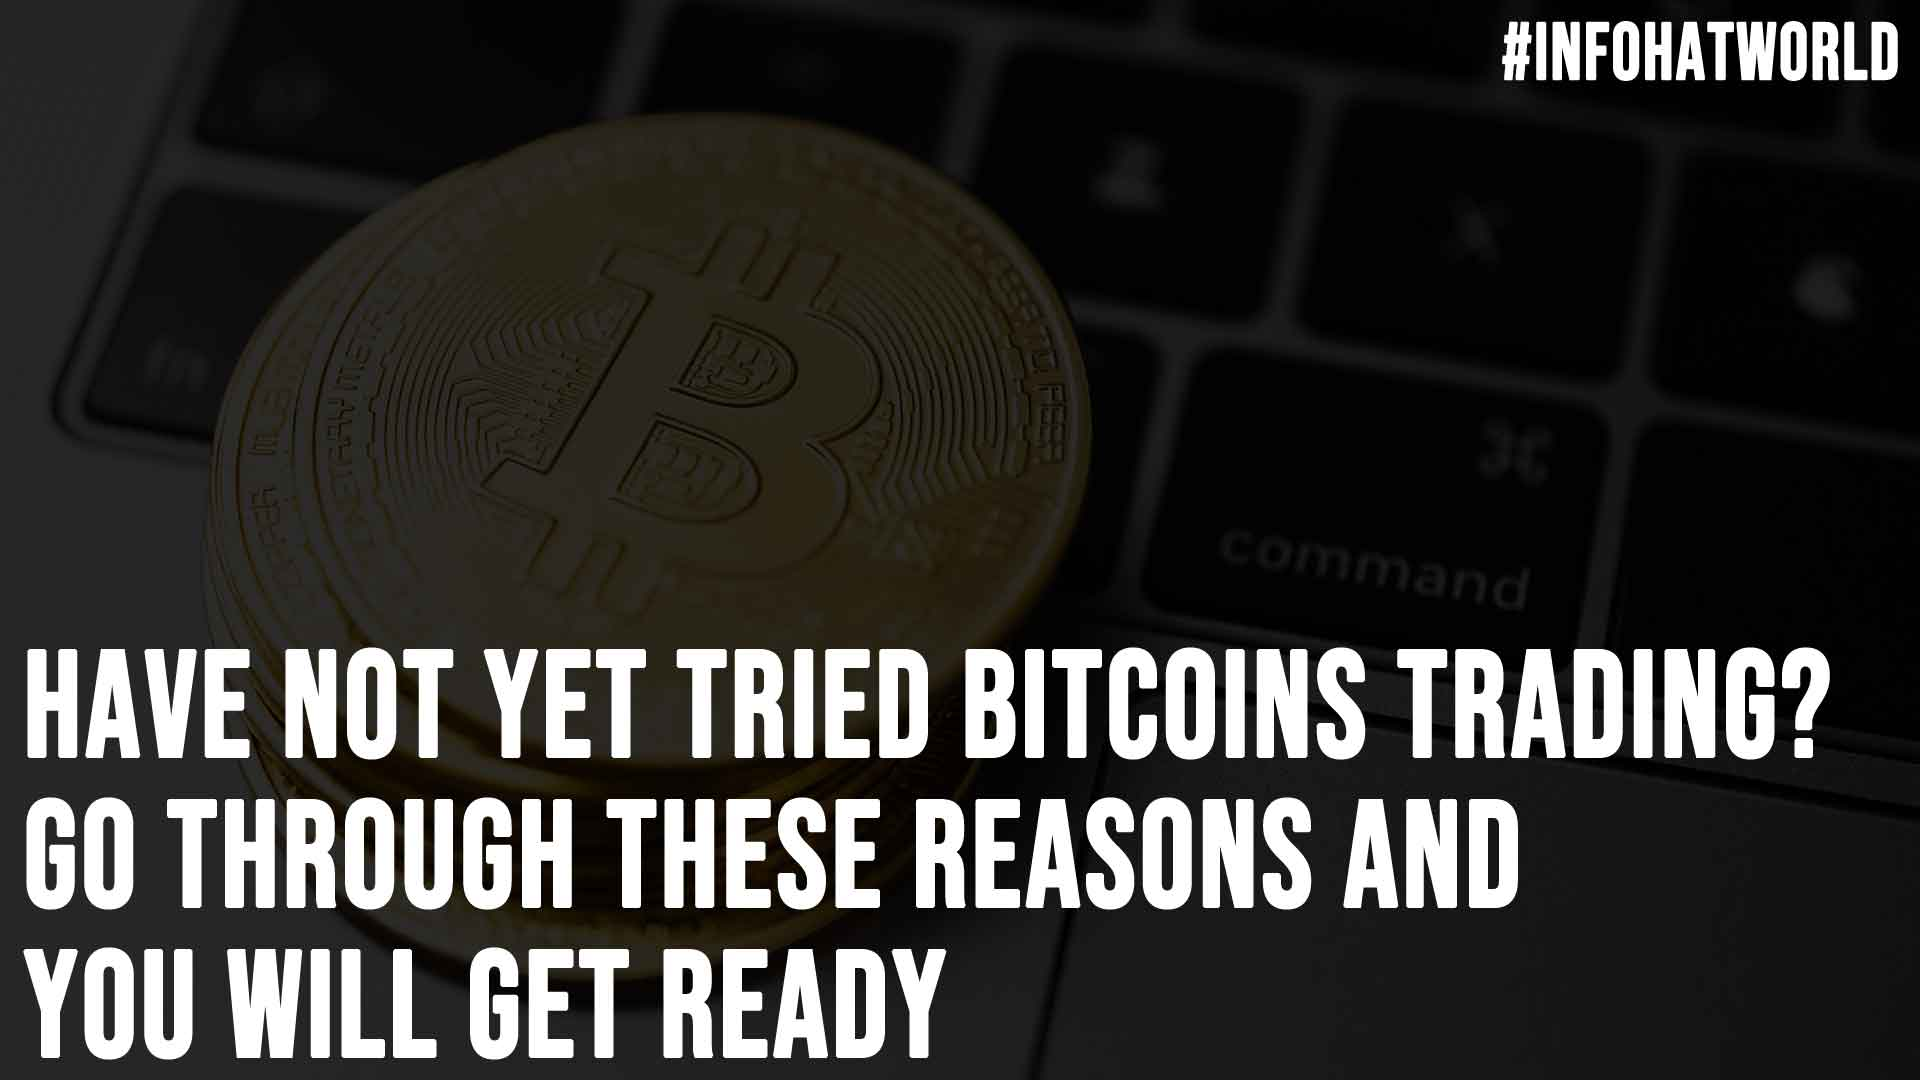 Have Not Yet Tried Bitcoins Trading Go Through These Reasons and You Will Get Ready